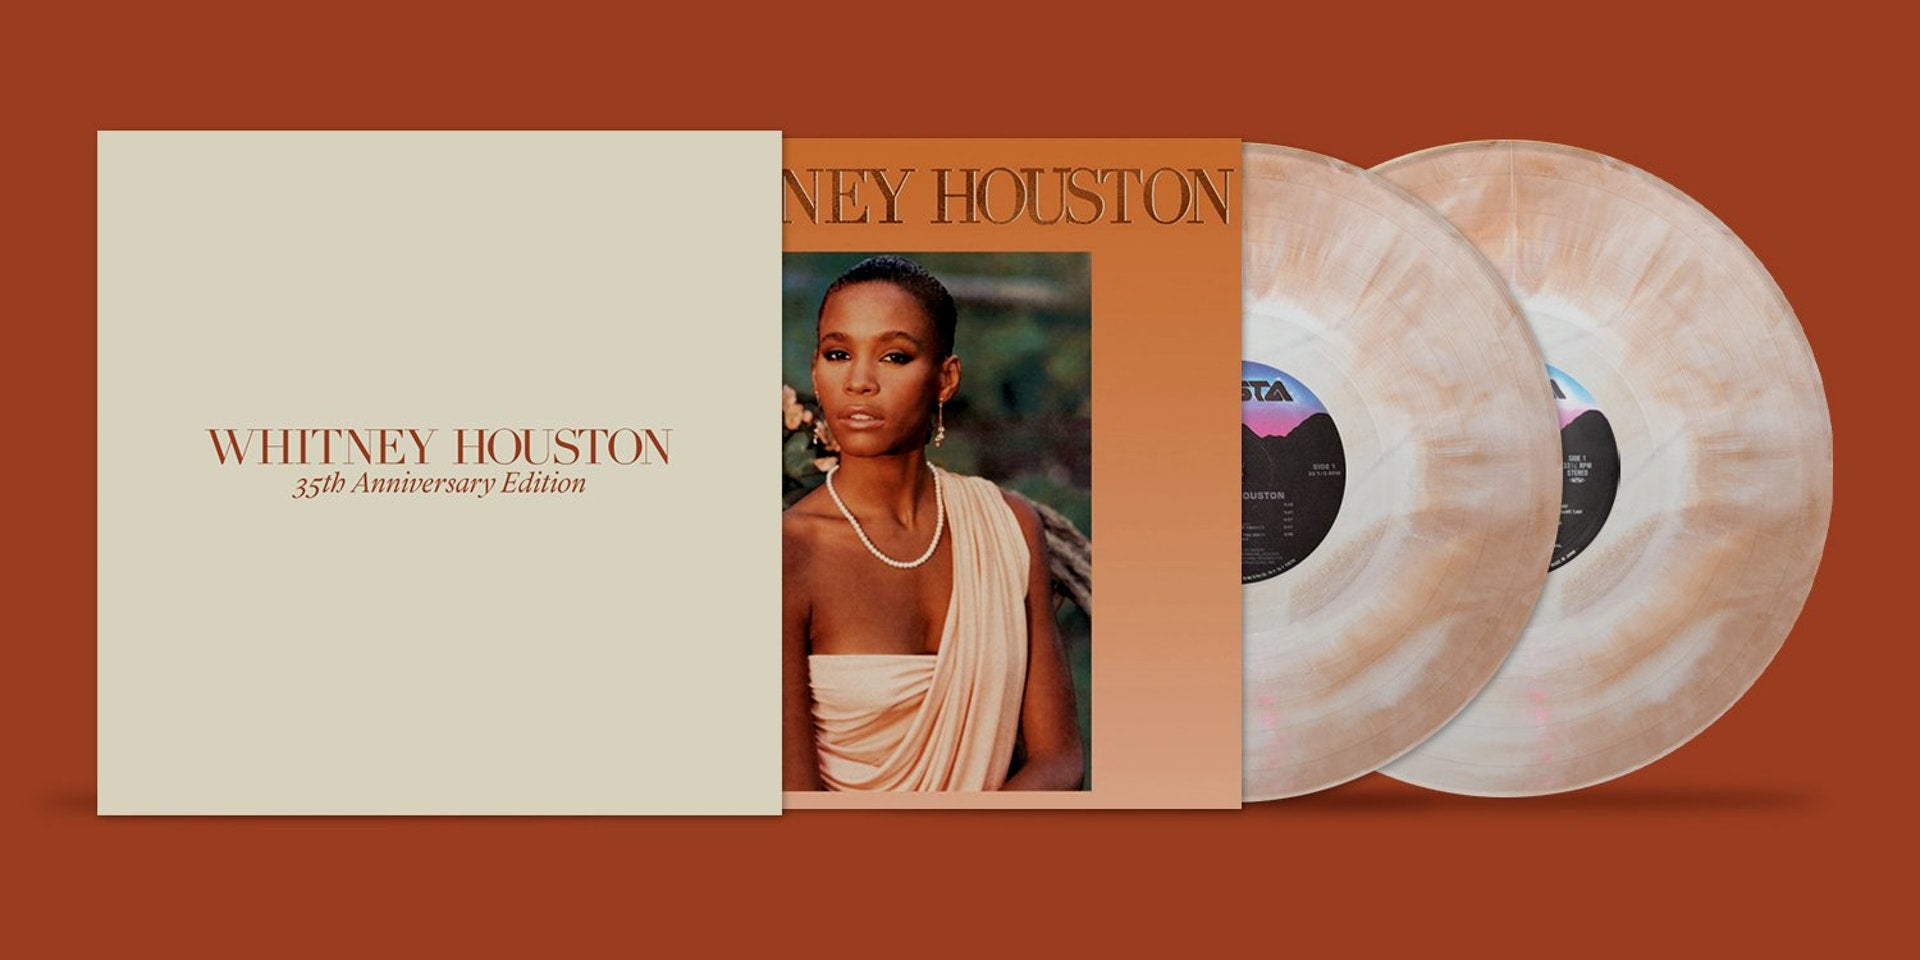 Get The New Deluxe Edition Of Whitney Houston's Debut Album